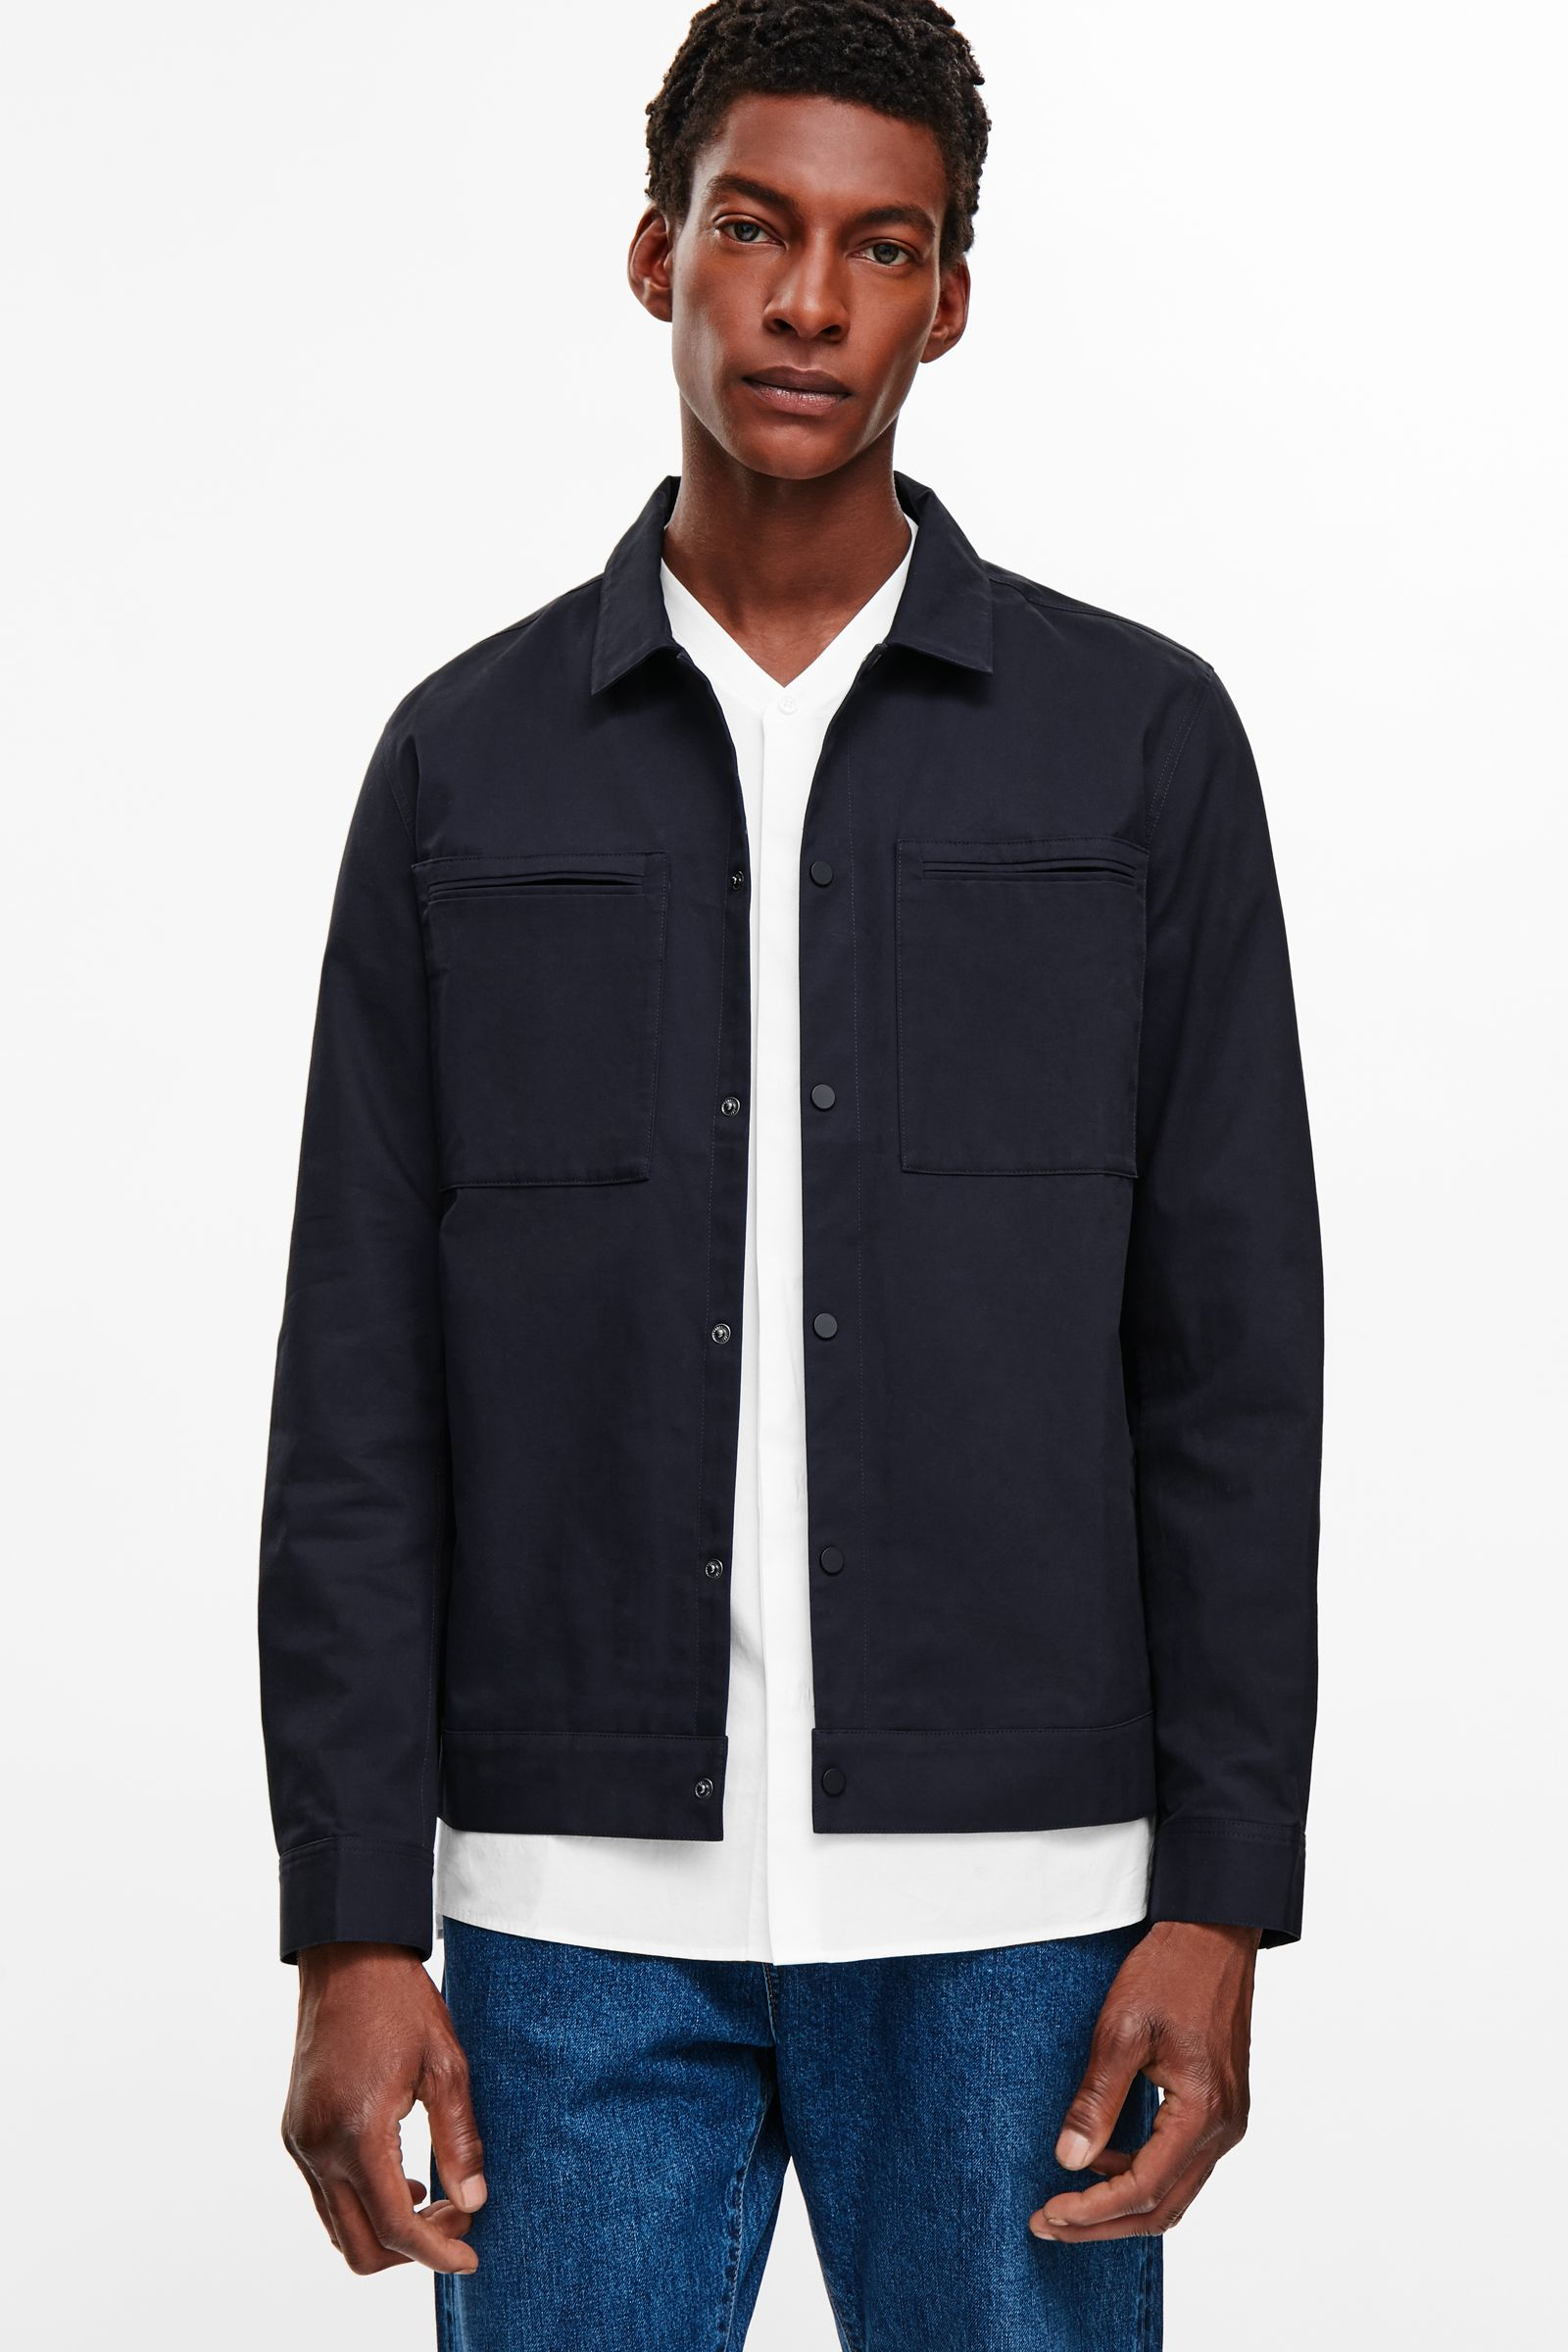 COS Military jacket jas blauw herfst MAN MAN